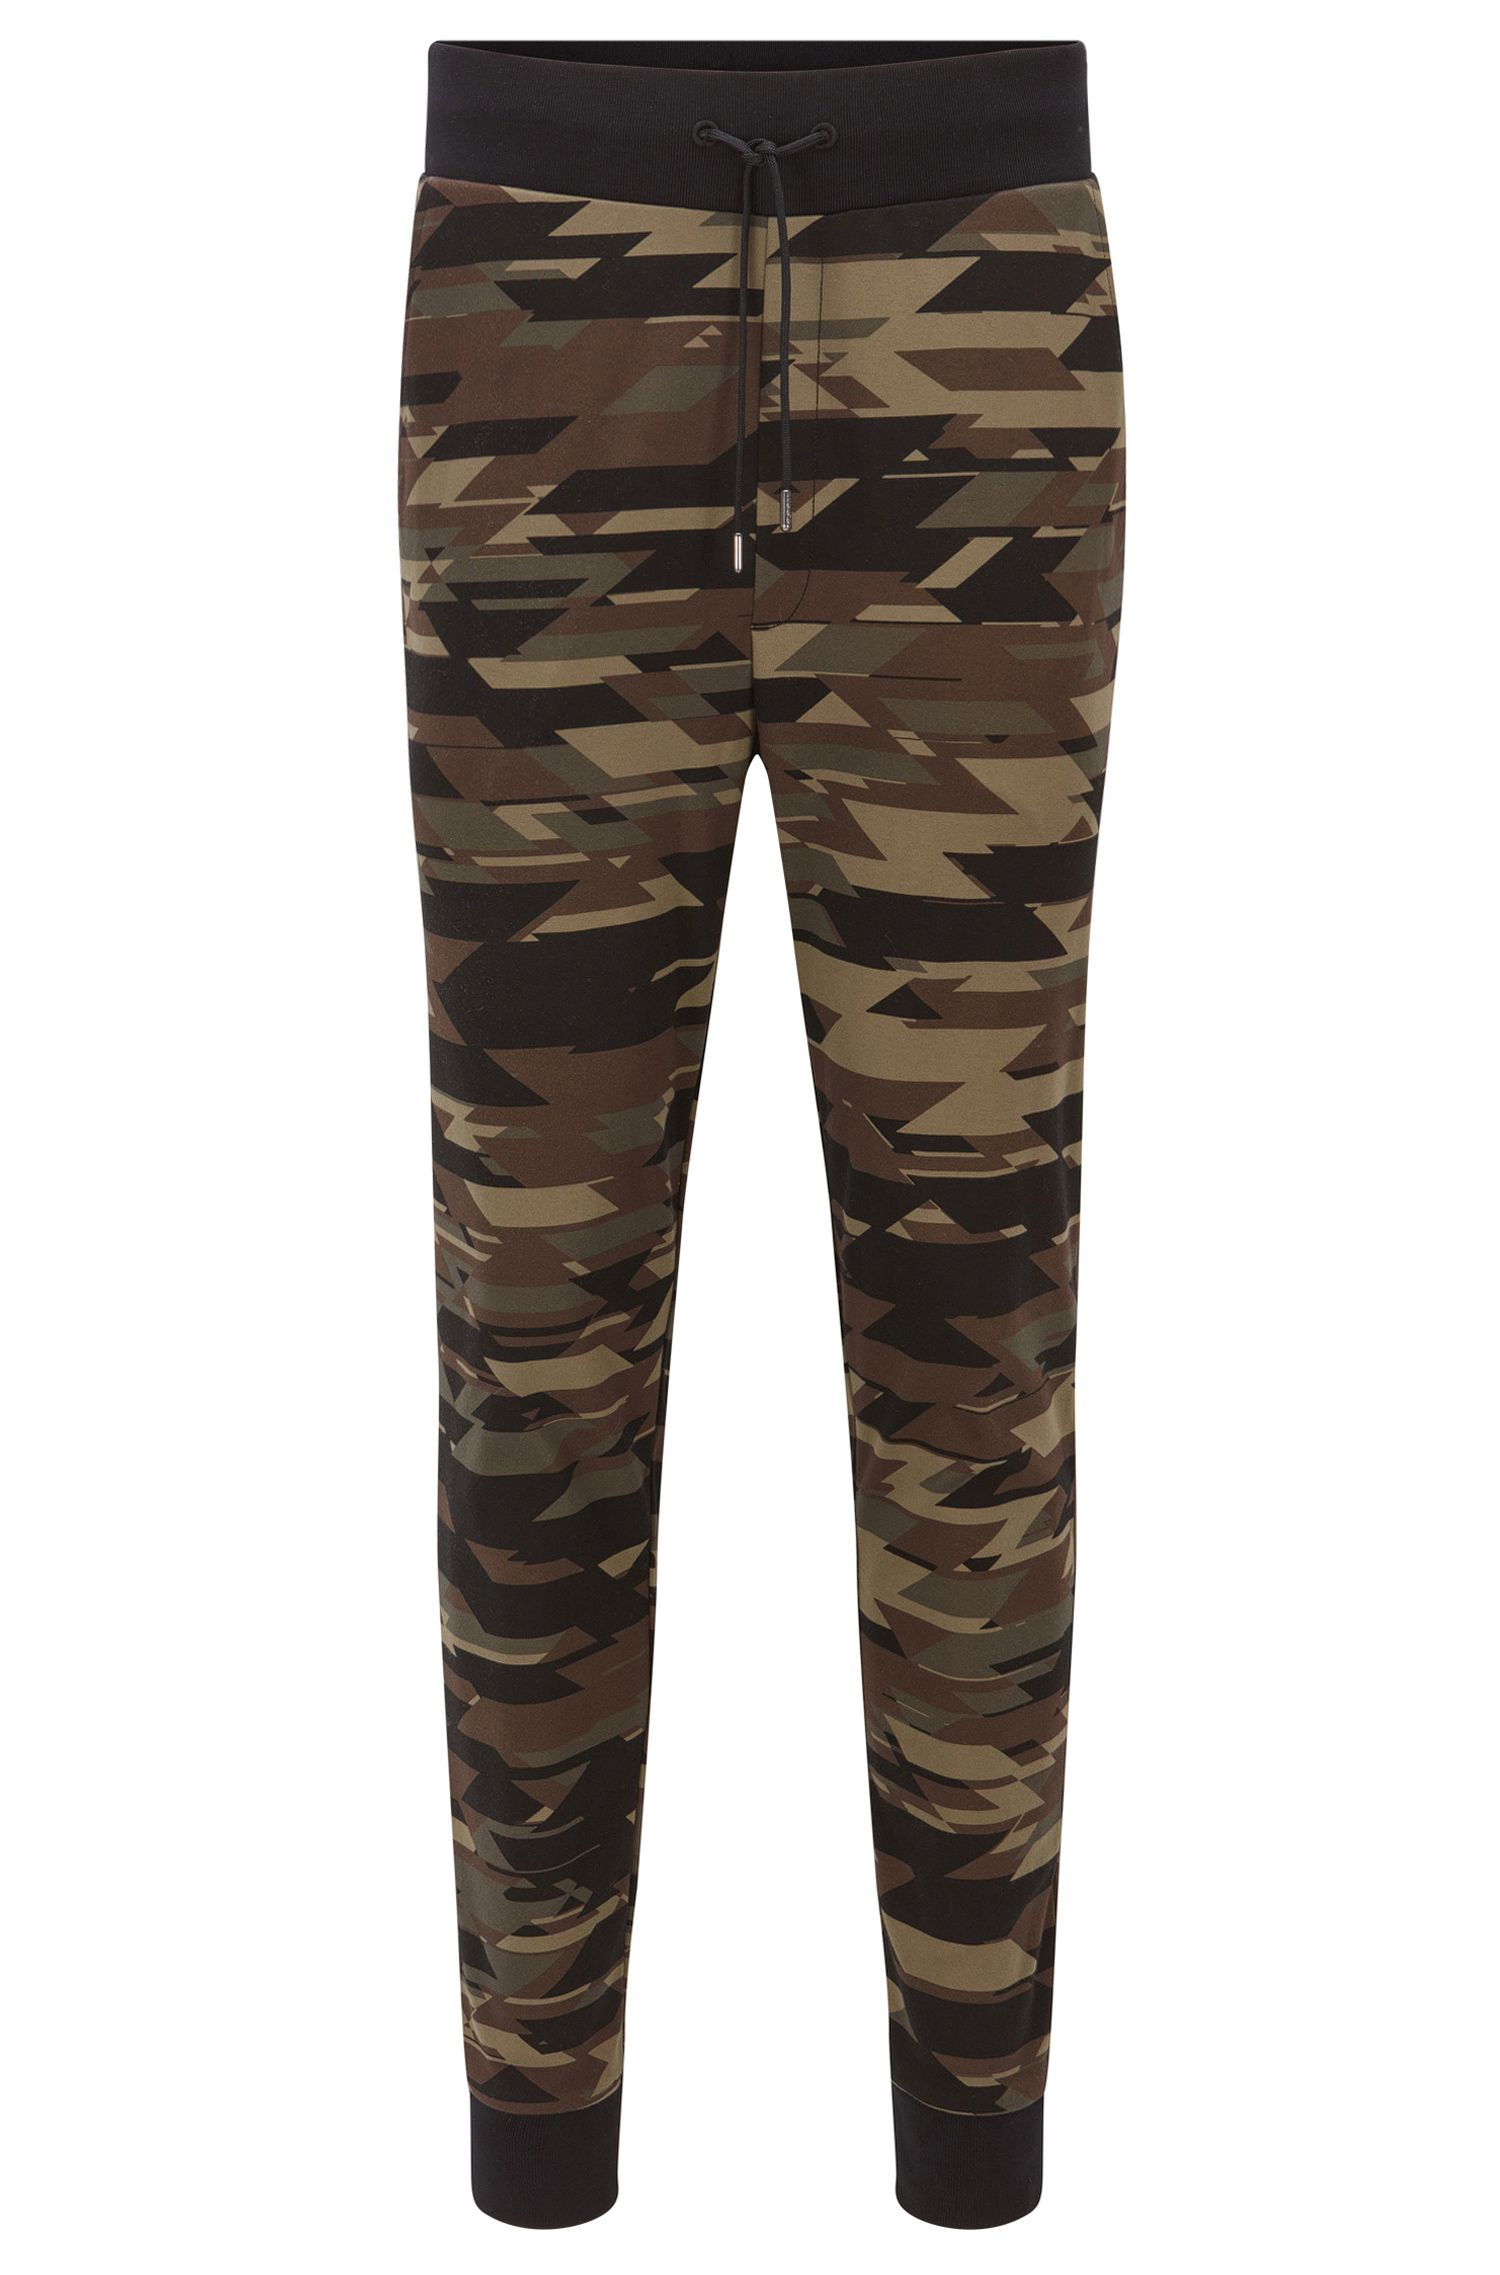 Pantalon de jogging Regular Fit en coton interlock à imprimé camouflage